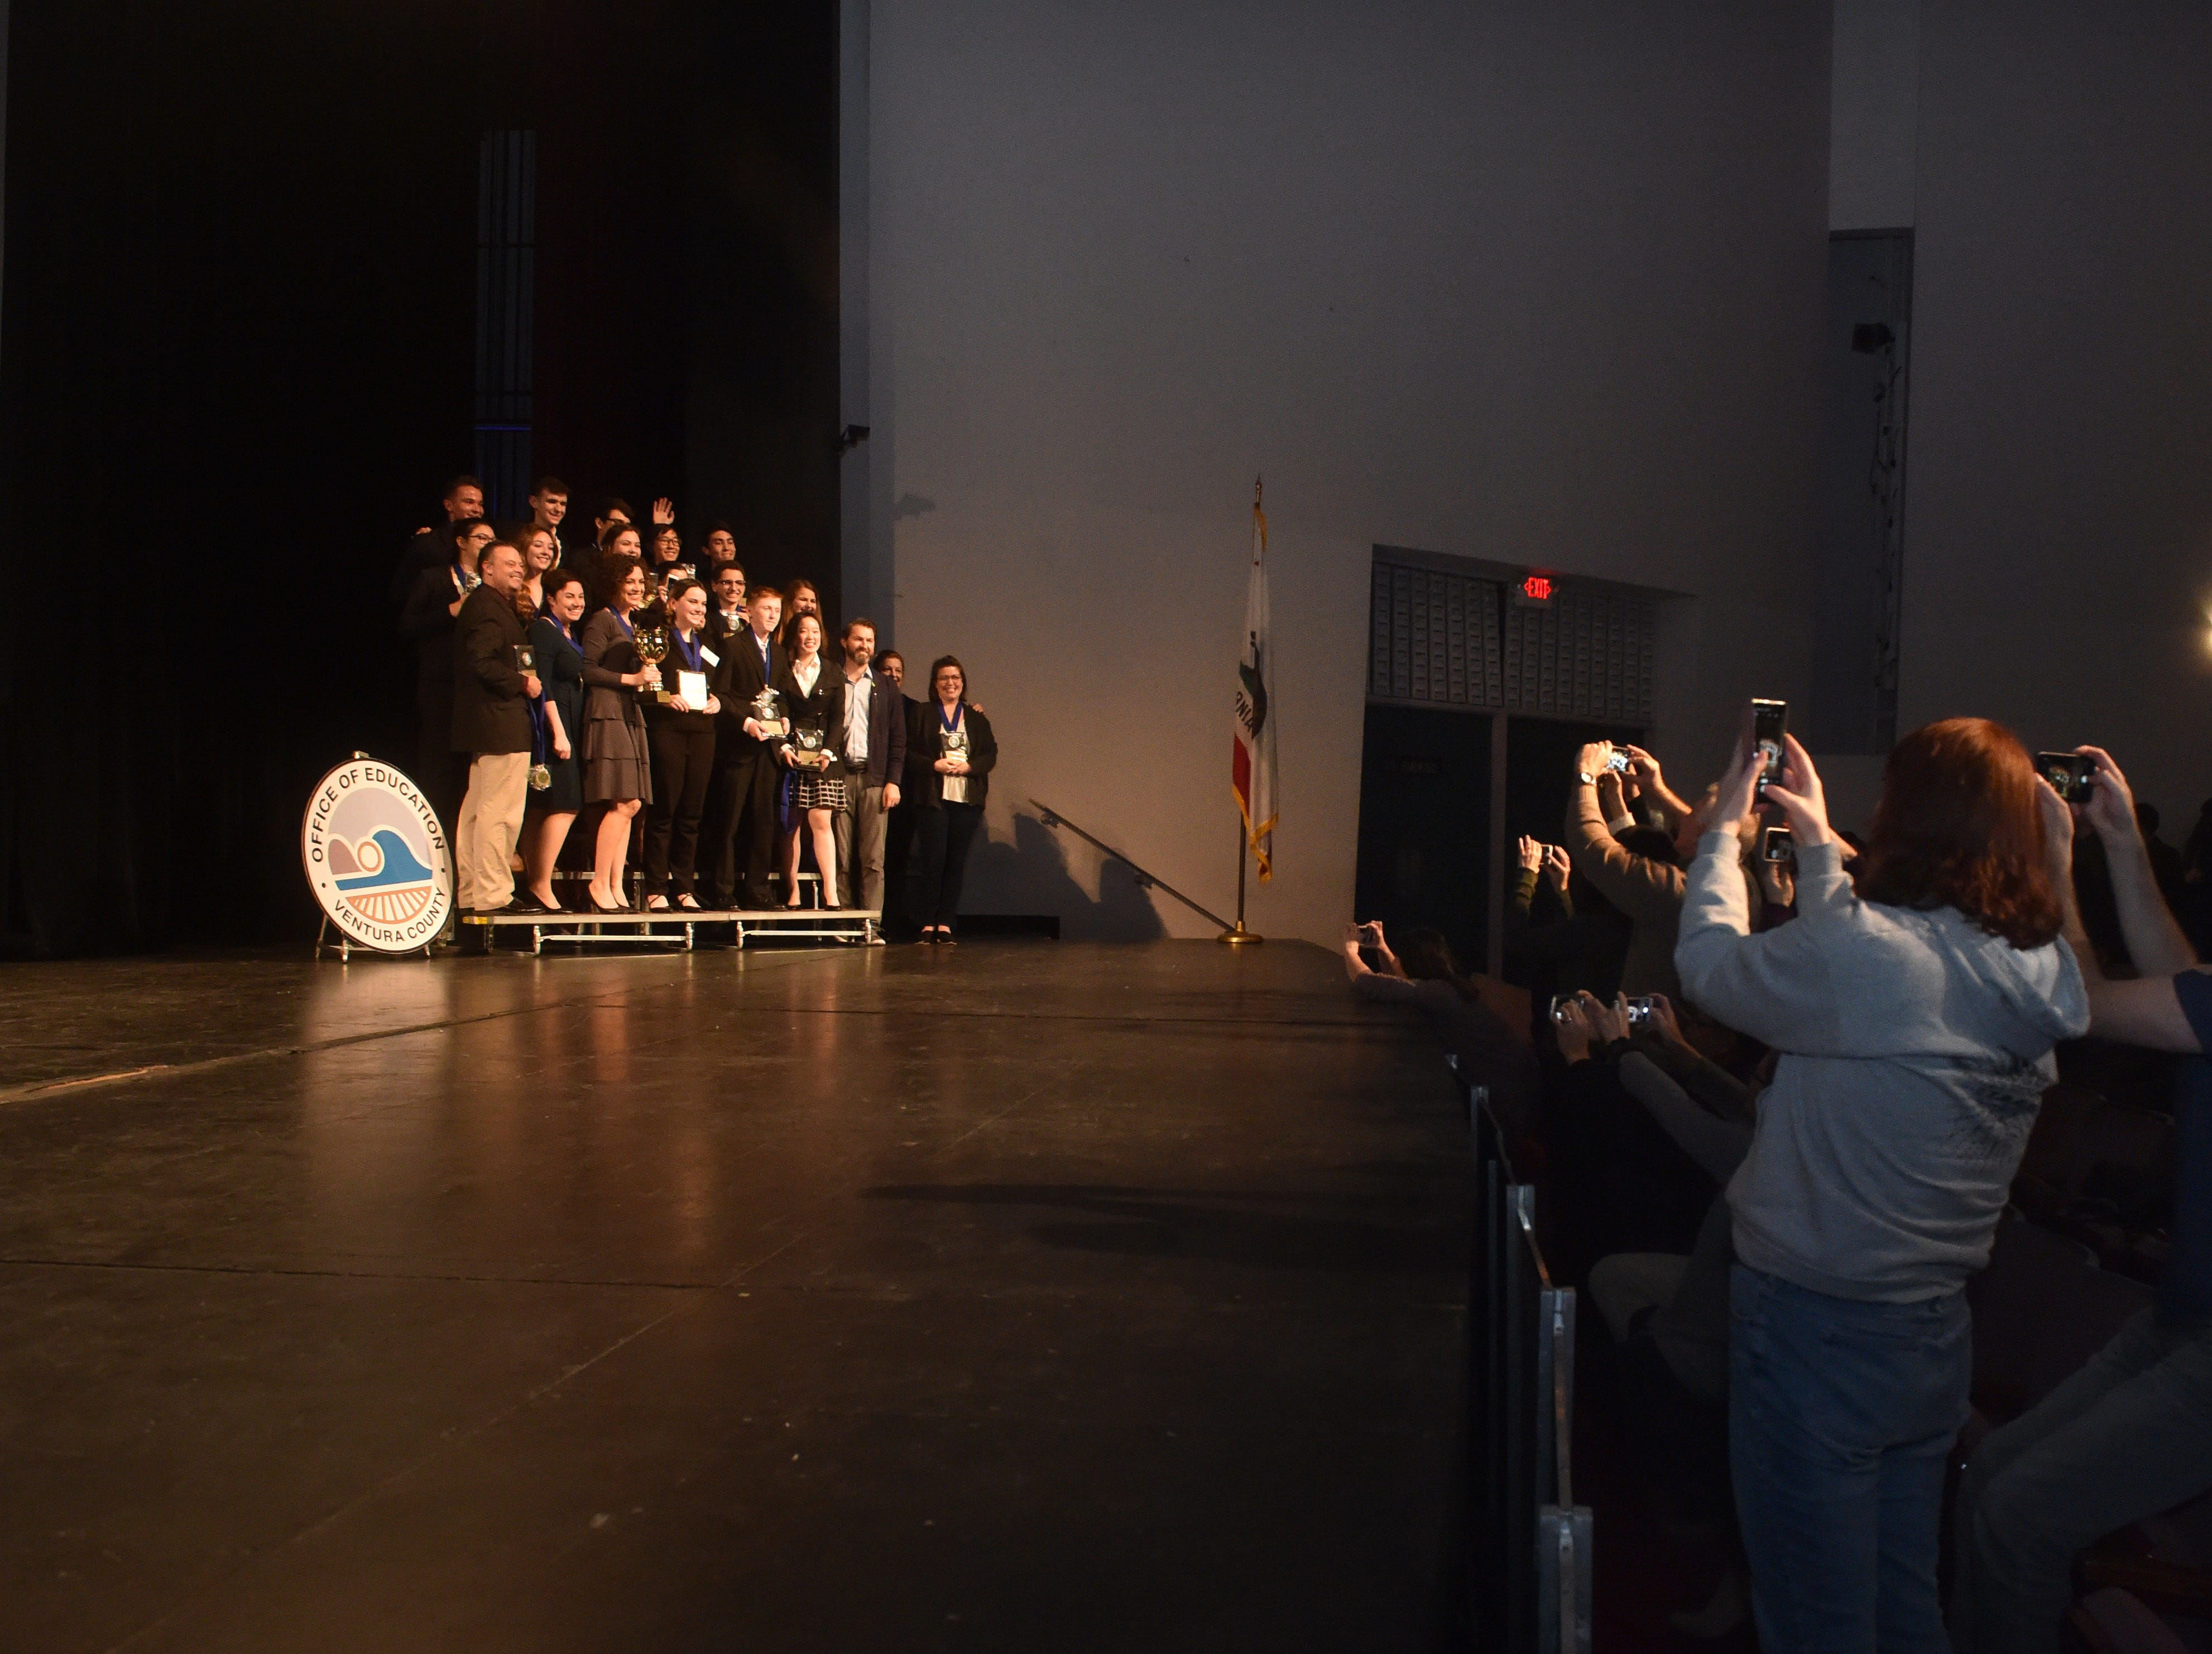 The Trinity Pacific mock trial team poses on stage after being announced the winners of the Ventura County Mock Trial Competition on Monday.